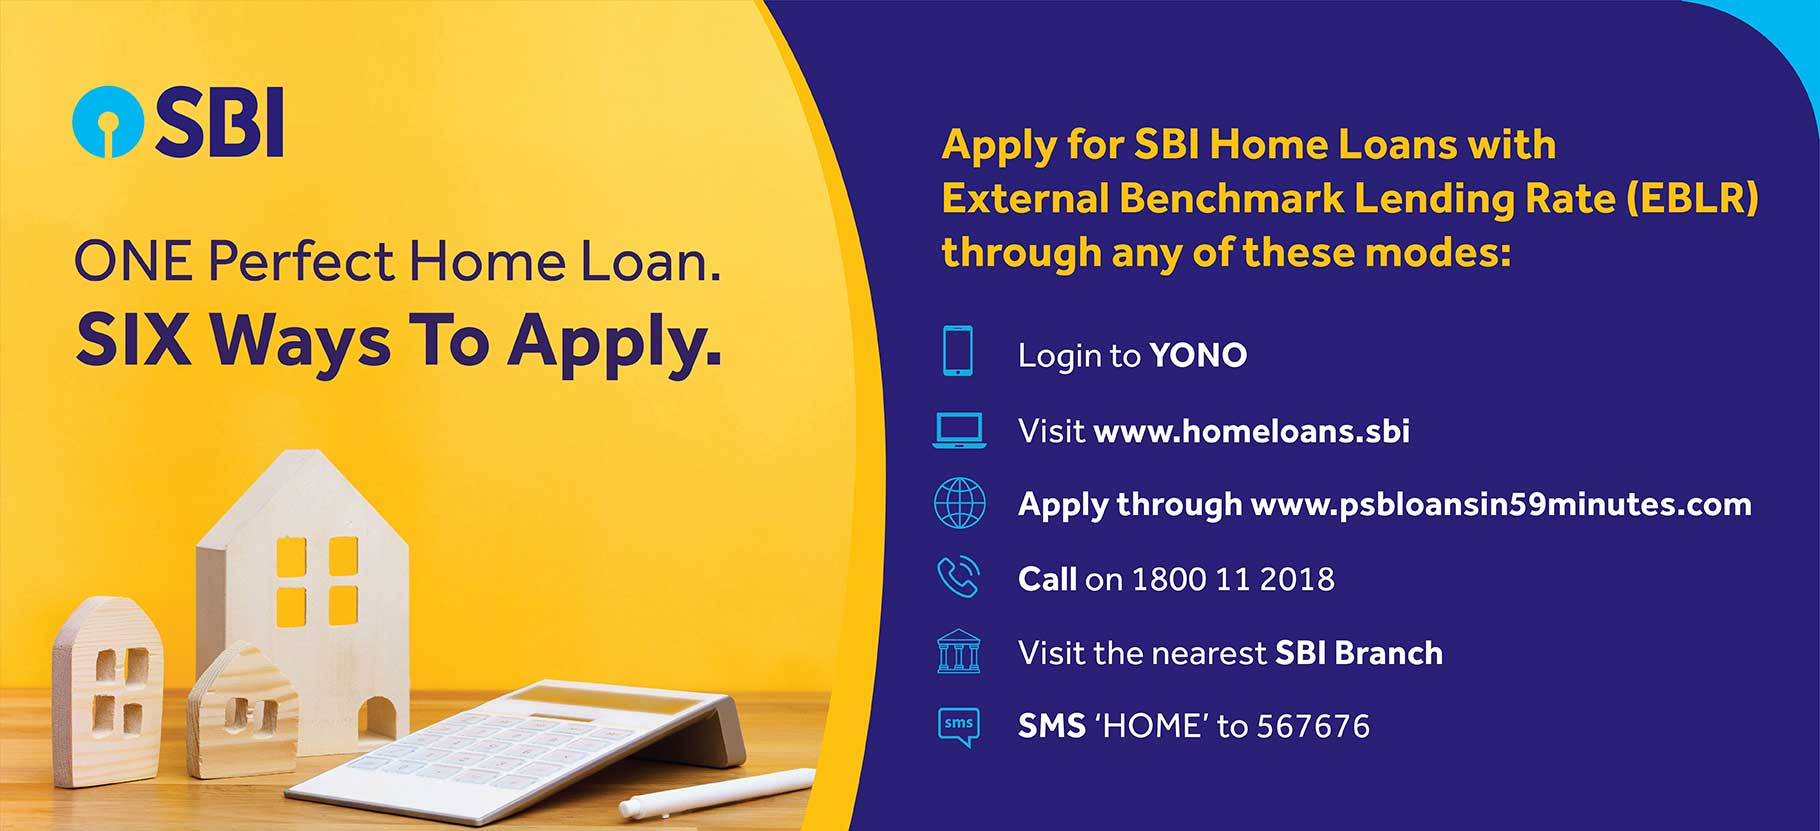 one perfect home loan. six ways to apply.